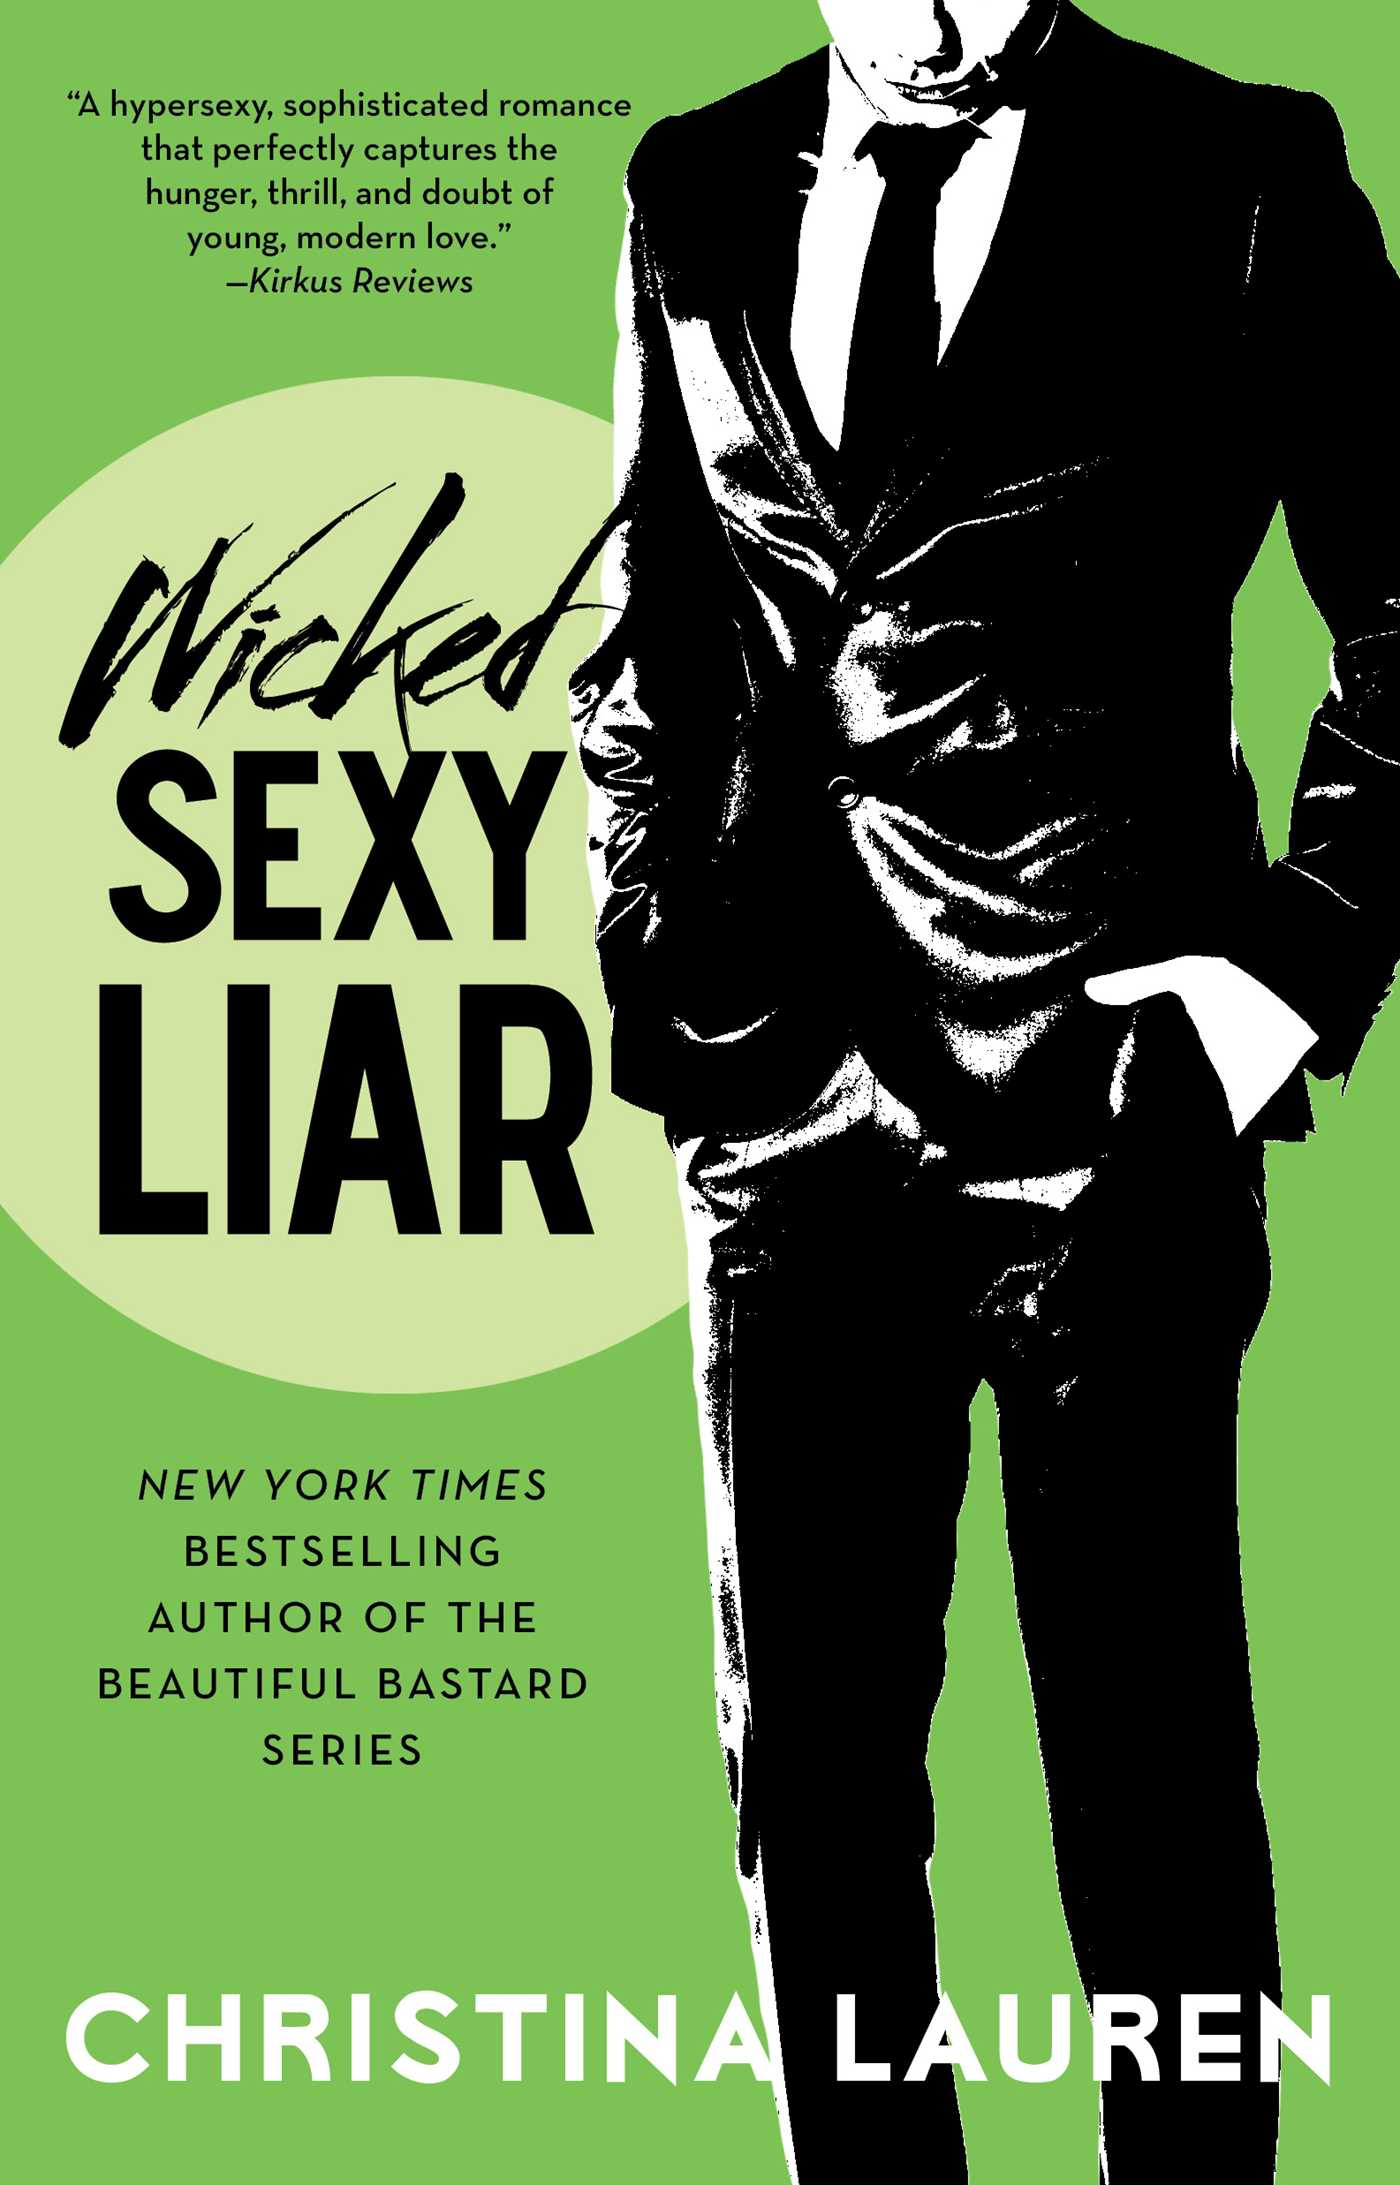 wicked-sexy-liar-9781476777986_hr.jpg